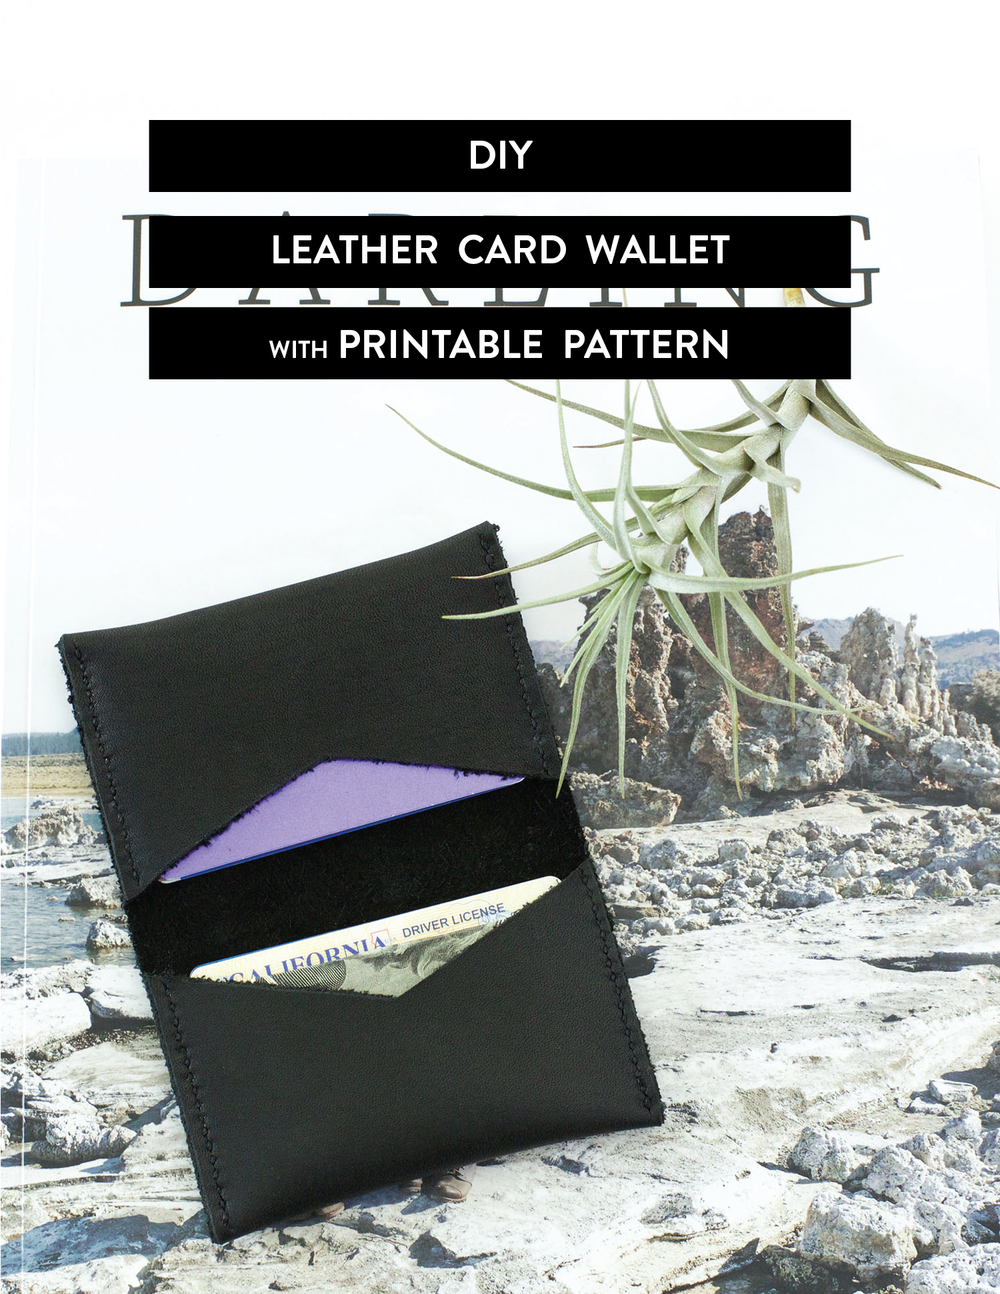 DIY Leather card wallet with free printable pattern. - clothstory.com